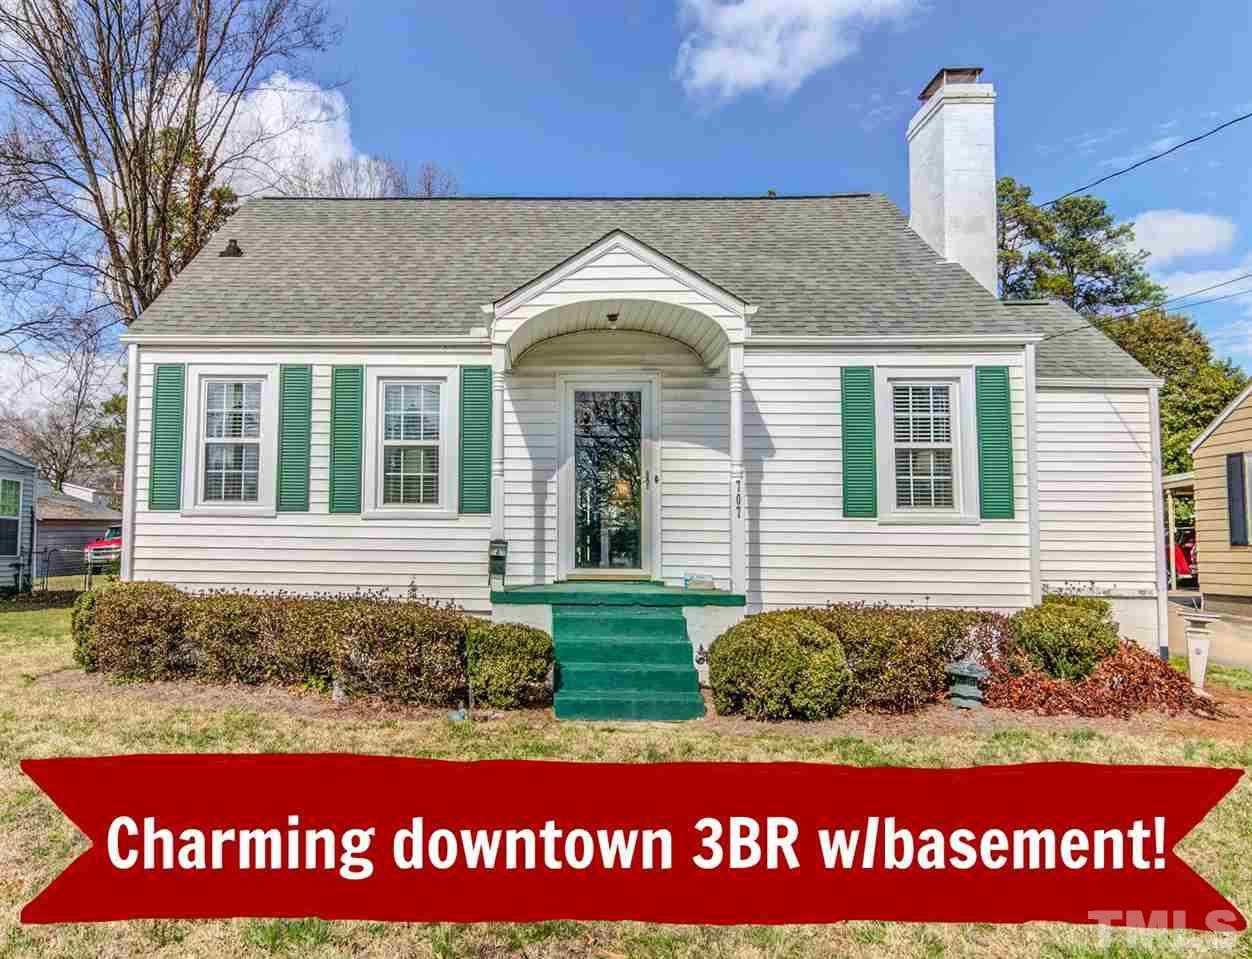 $410,000 - 3Br/2Ba -  for Sale in Not In A Subdivision, Raleigh